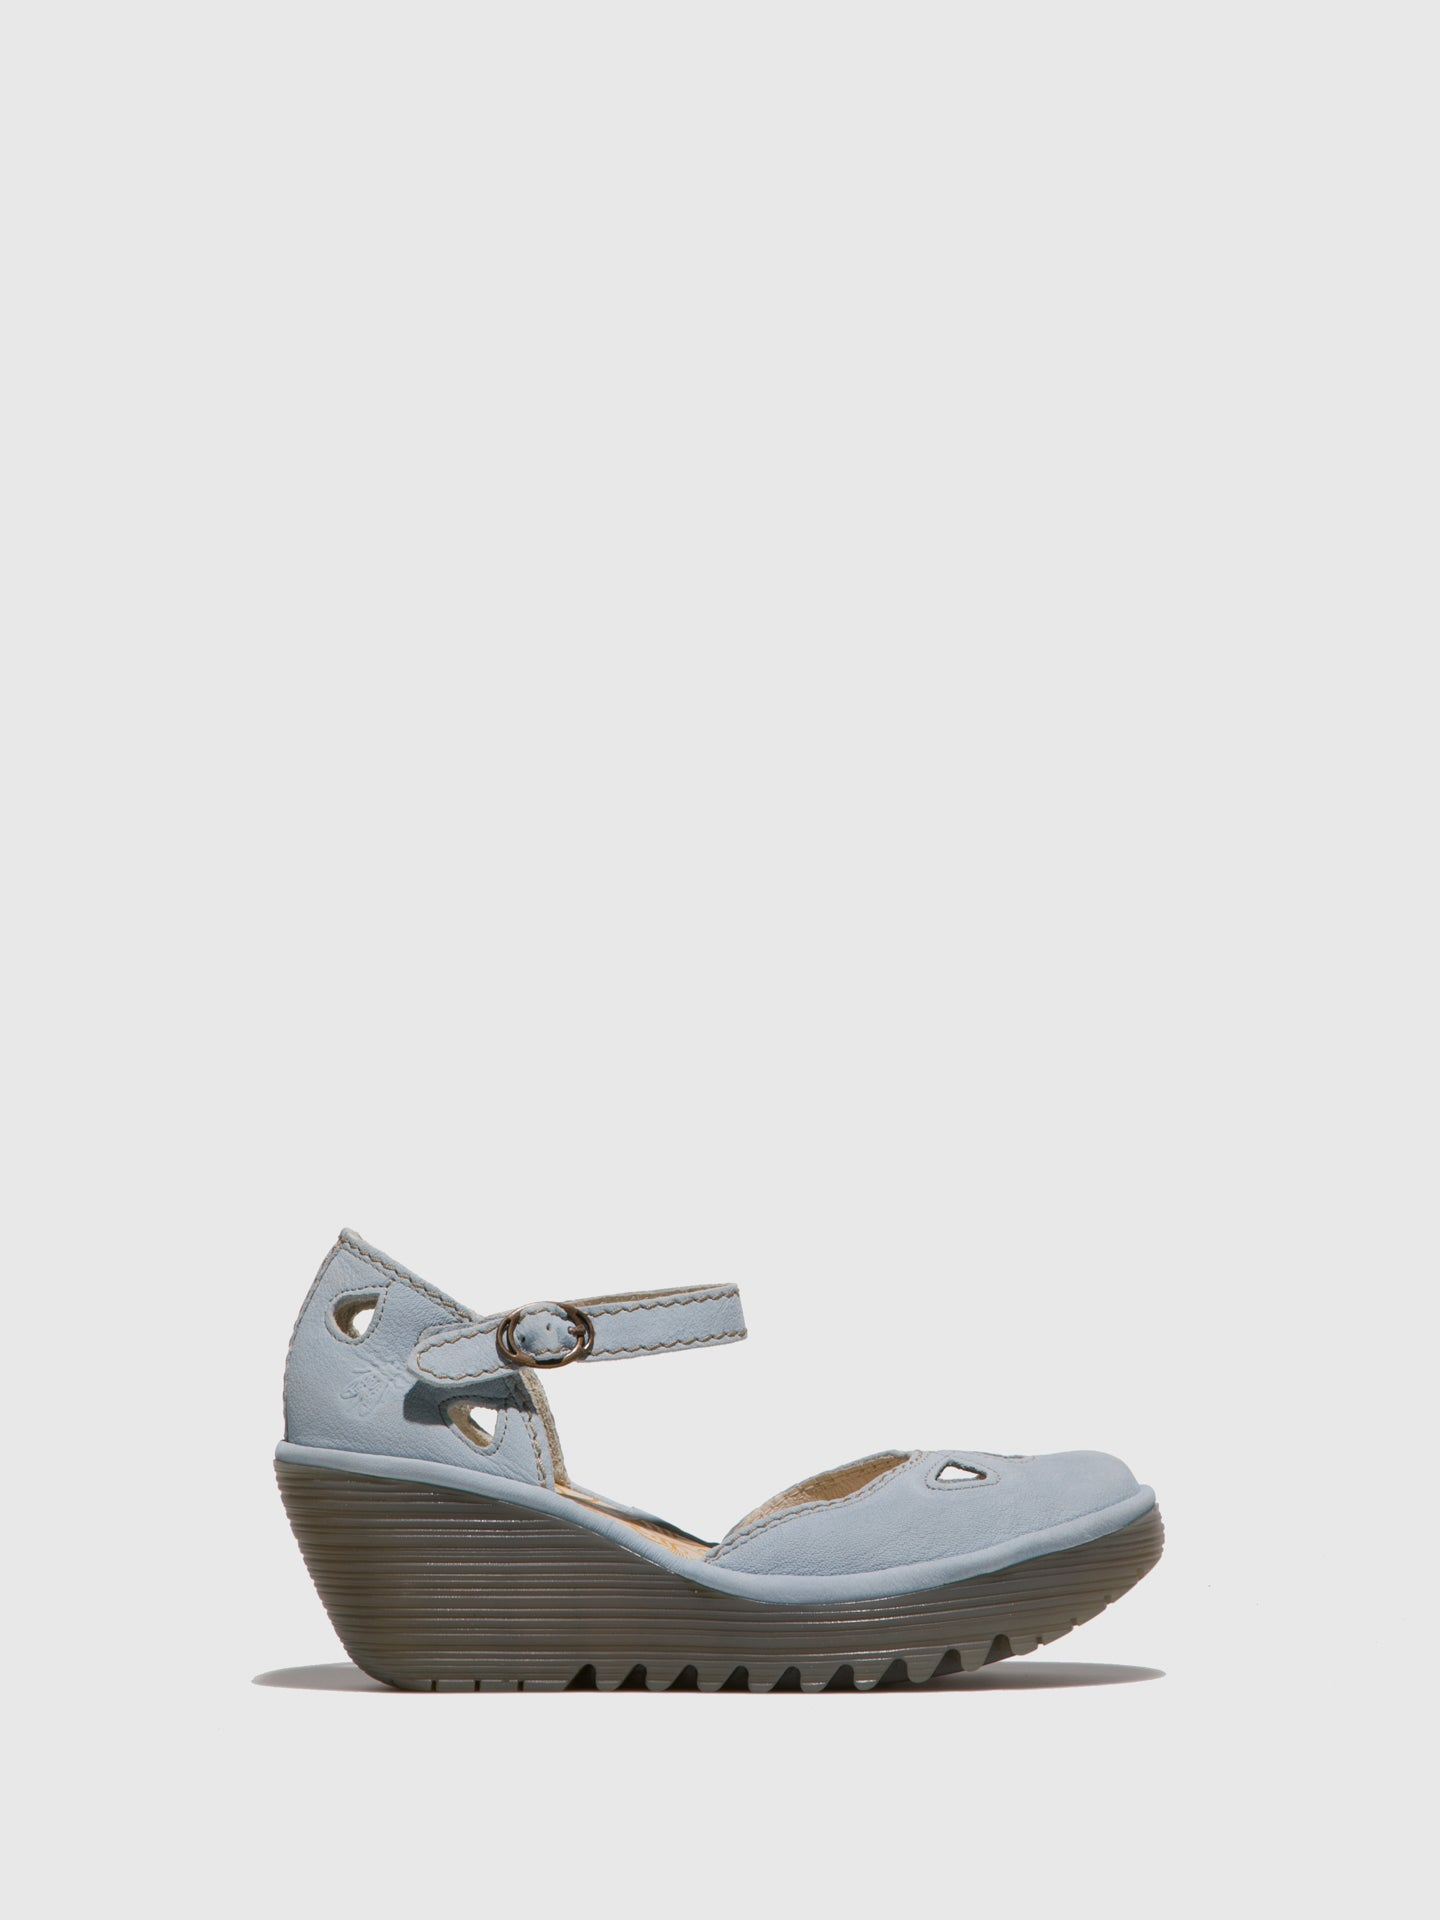 Fly London SkyBlue Wedge Sandals